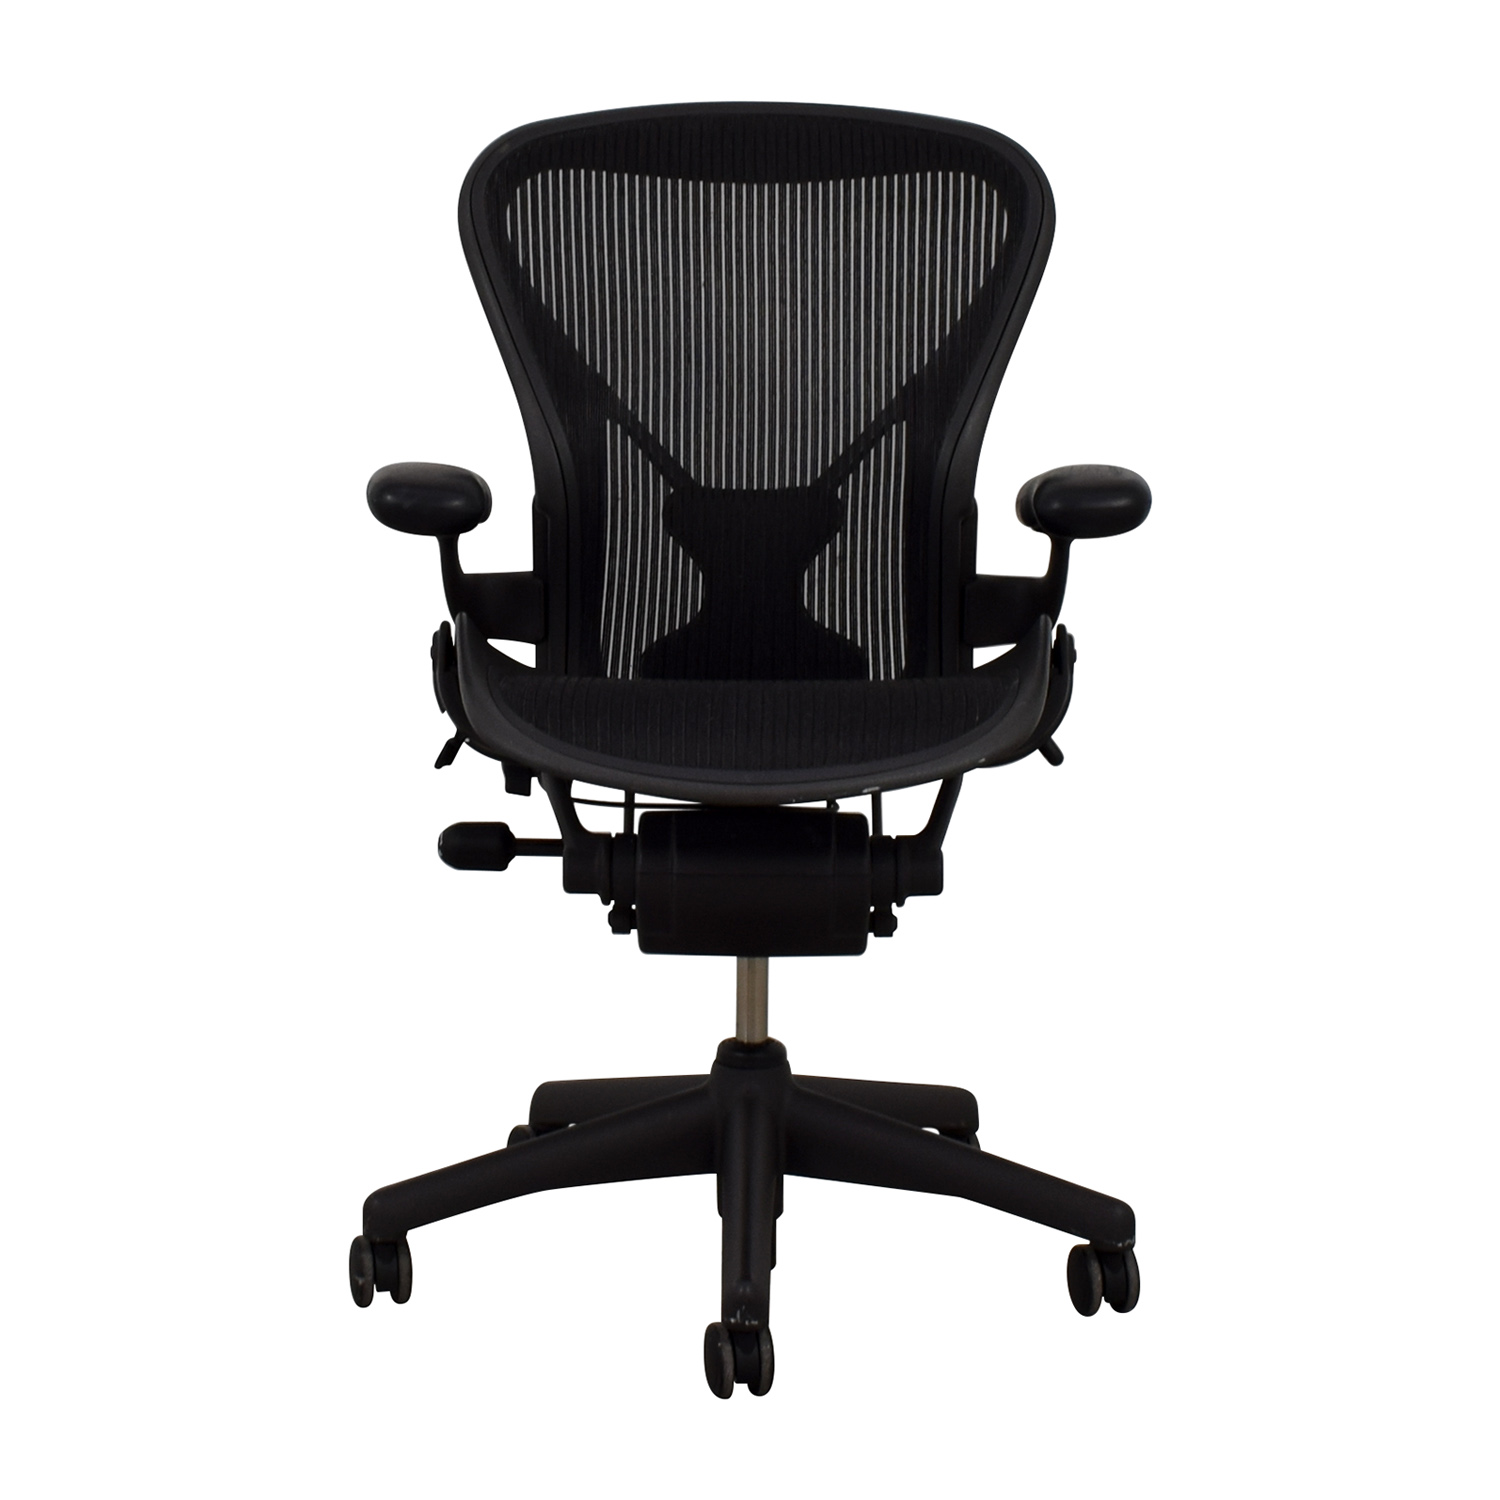 buy Herman Miller Herman Miller Aeron Black Chair online